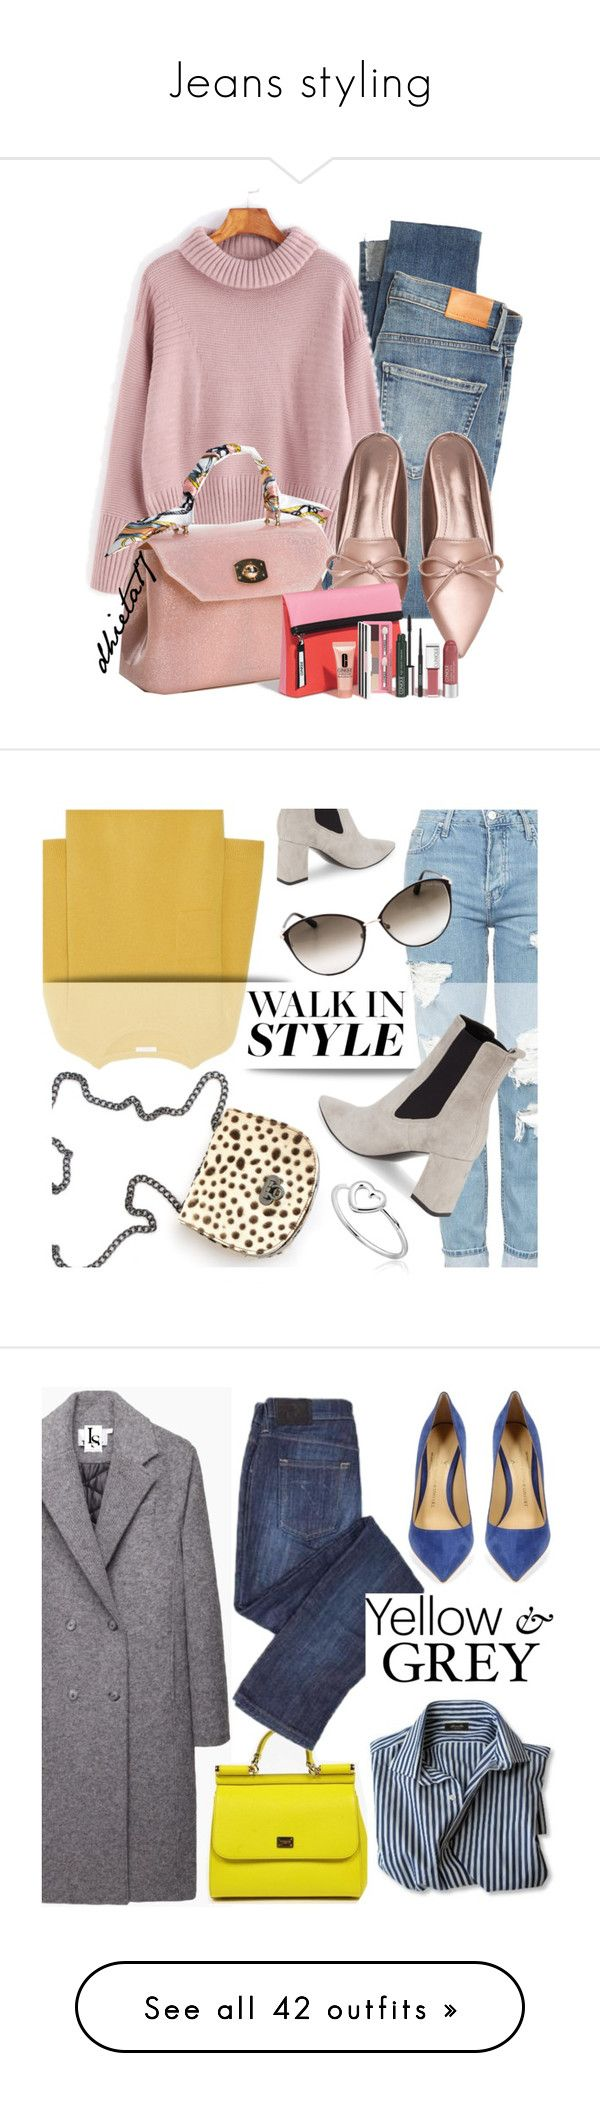 Jeans styling by didide1 on Polyvore featuring polyvore fashion style Citizens of Humanity clothing pinkSweater Topshop Chloé Marc Fisher LTD Tom Ford LeopardPrint chelseaboots leopardbag Versace 19•69 T By Alexander Wang Dolce&Gabbana Oris White House Black Market H&M HUGO Valentino Gianvito Rossi polyvoreditorial licethfashion Olivia Burton Casetify Yves Saint Laurent 3.1 Phillip Lim Michael Kors TrickyTrend highwaistjeans mytheresa Monki Ally Fashion Vionnet Dsquared2 Jeremy Scott…